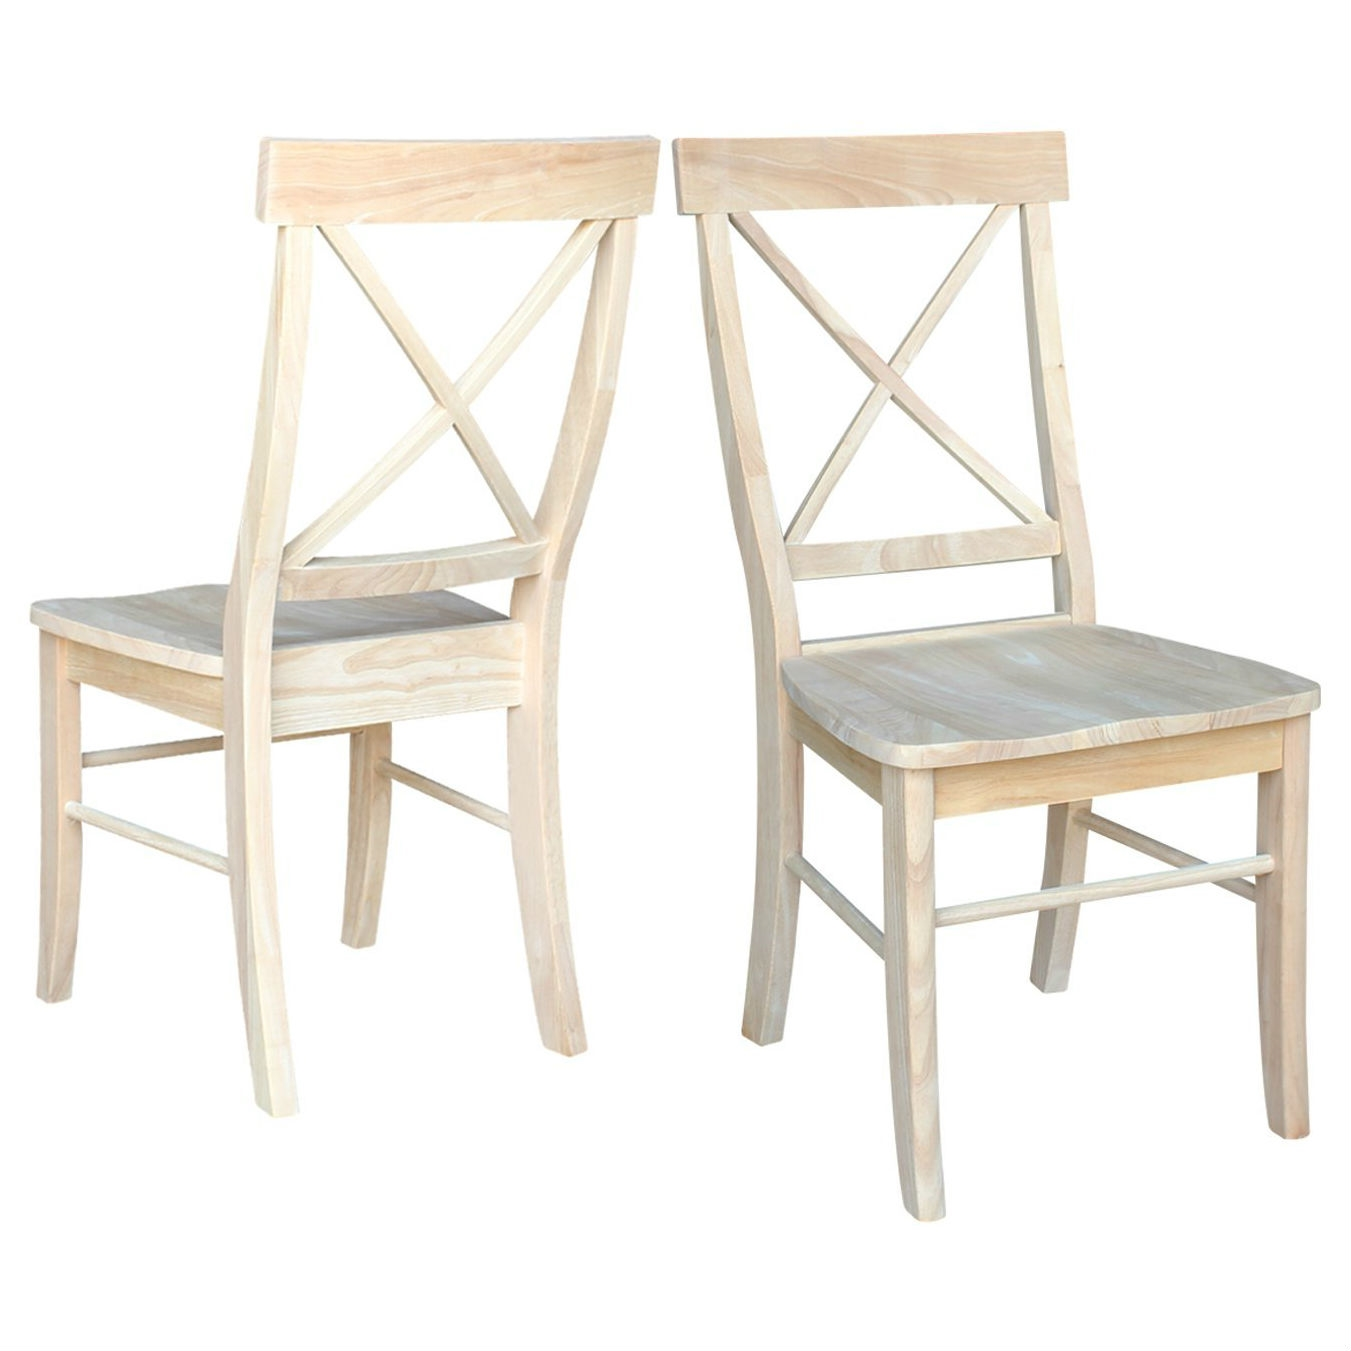 Set Of 2 Unfinished Wood Dining Chairs With X Back Seat Backrest